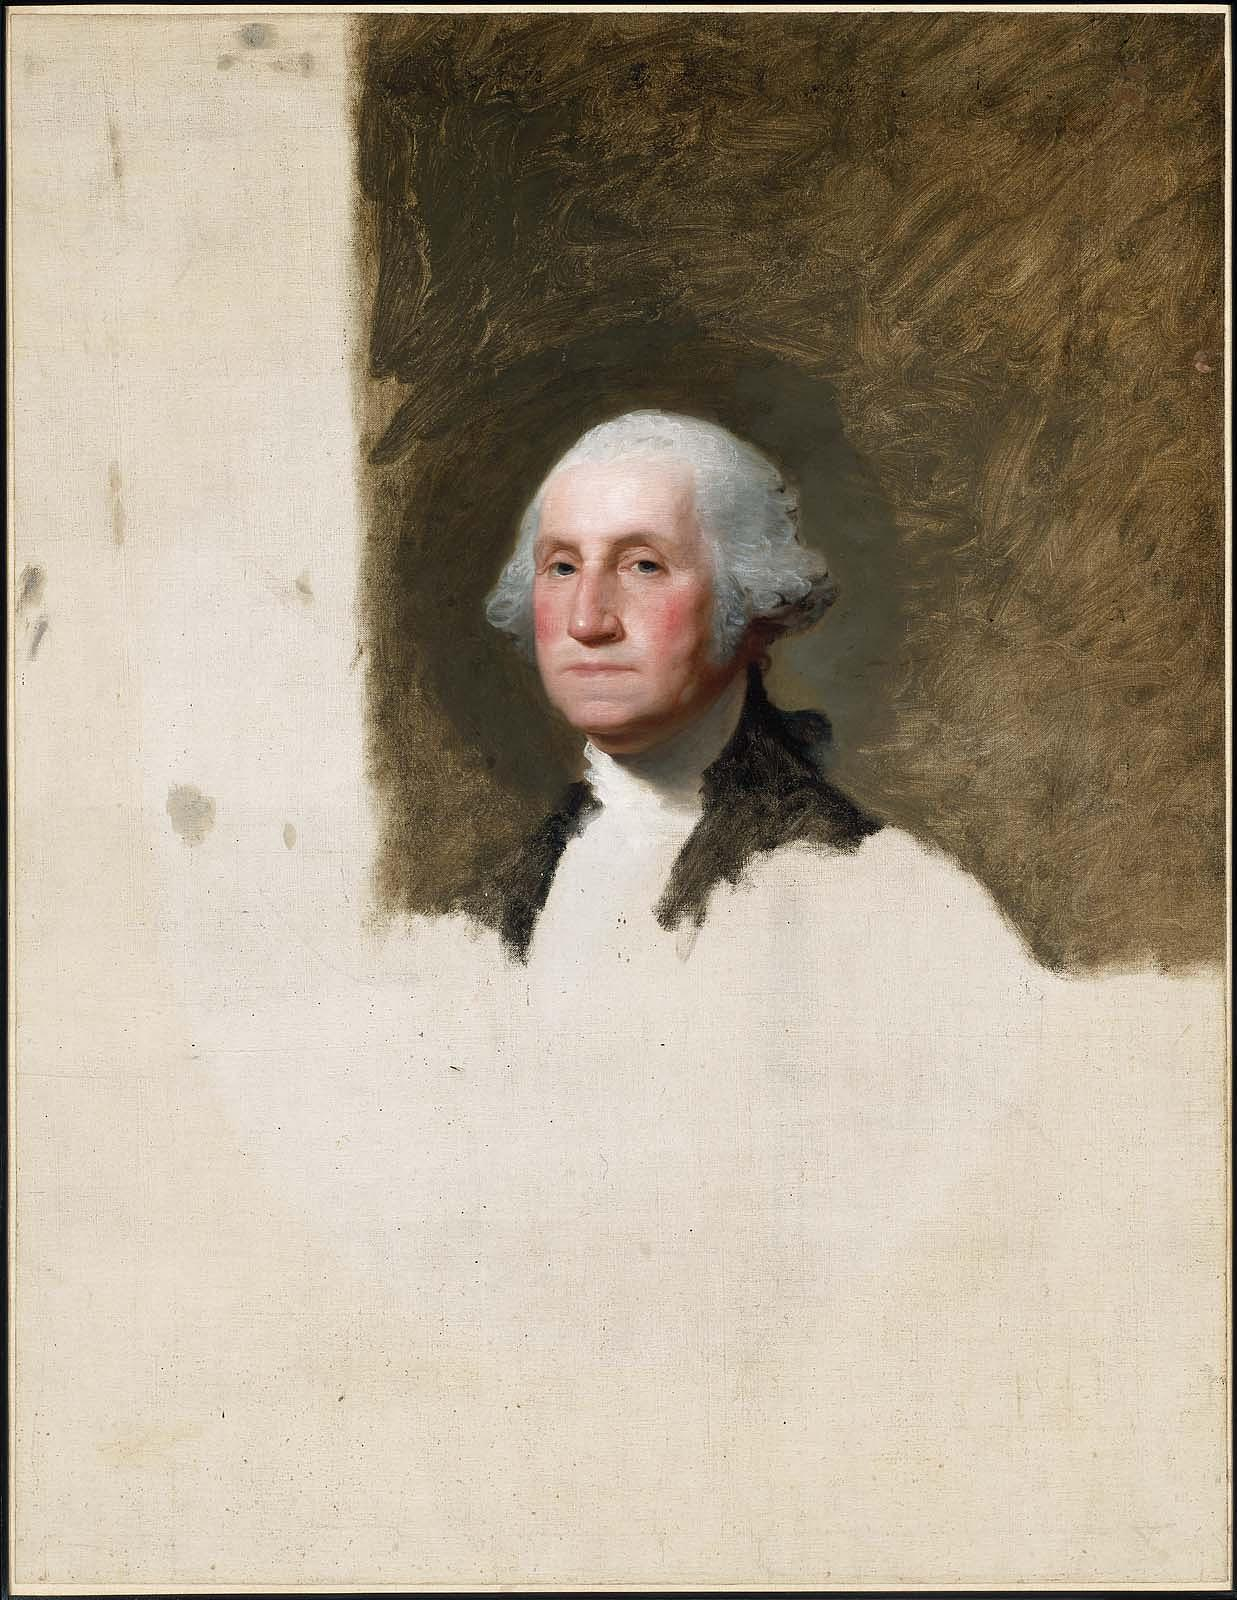 Gilbert Stuart's unfinished portrait of George Washington. The portrait of George Washington is now infamous as the Athenaeum portrait and an engraving of it is the one seen in the dollar bill. Stuart never completed or returned these portraits despite Martha Washington's numerous requests. But, he did make and sell over a hundred copies of this George Washington bust. 1796. Museum of Fine Arts, Boston.